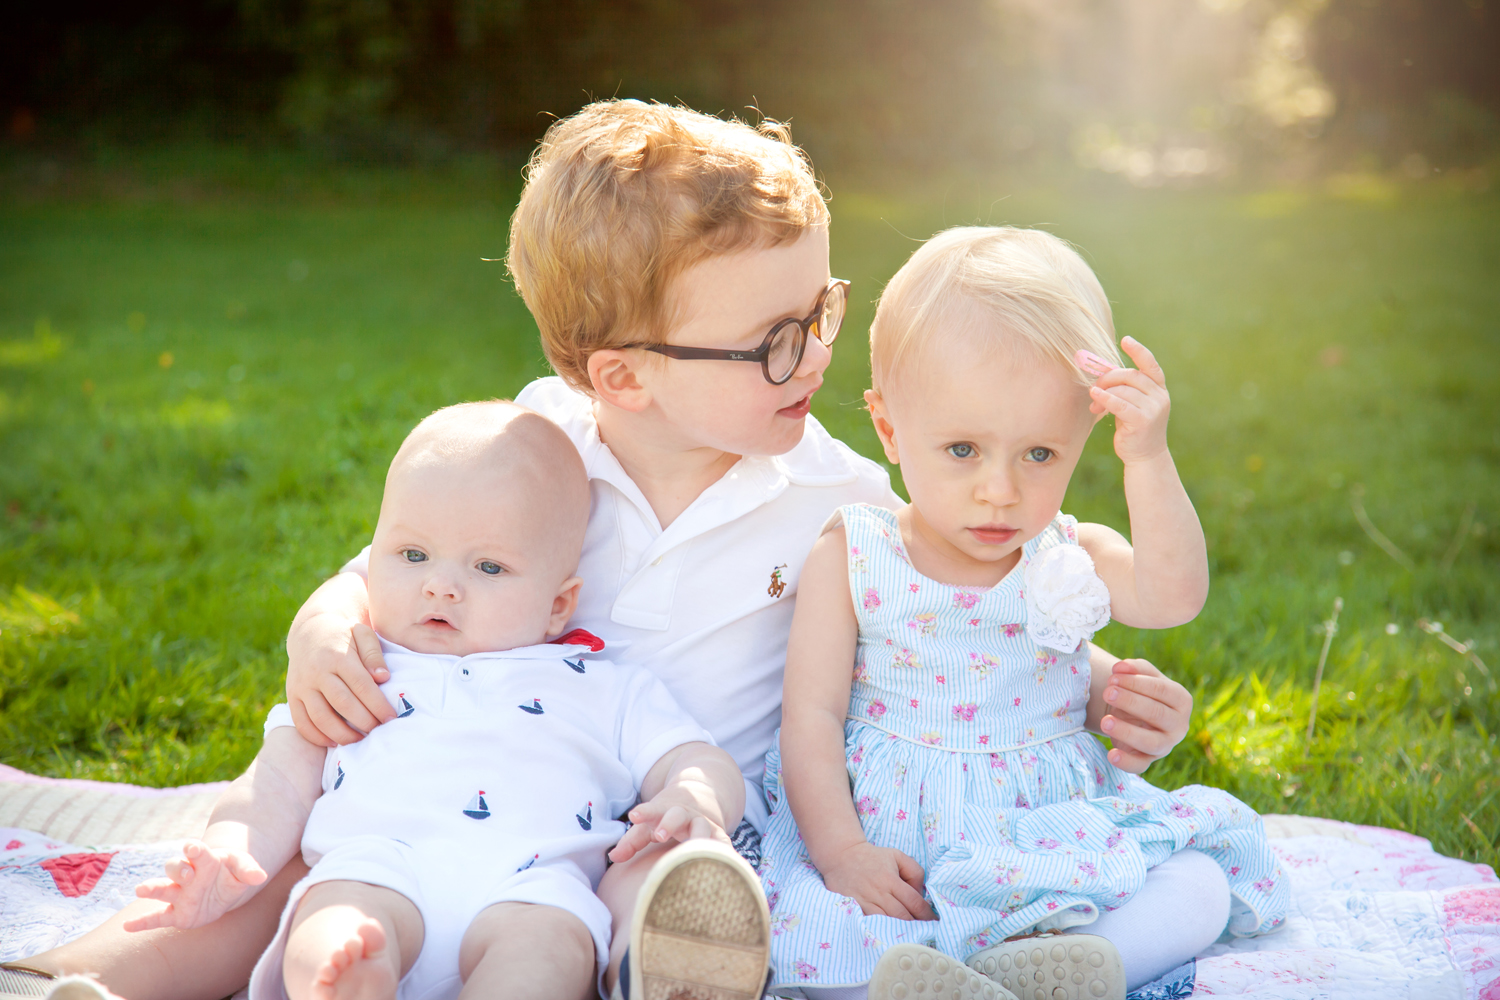 children photographer bournemouth family photographer baby photographer bournemouth.jpg